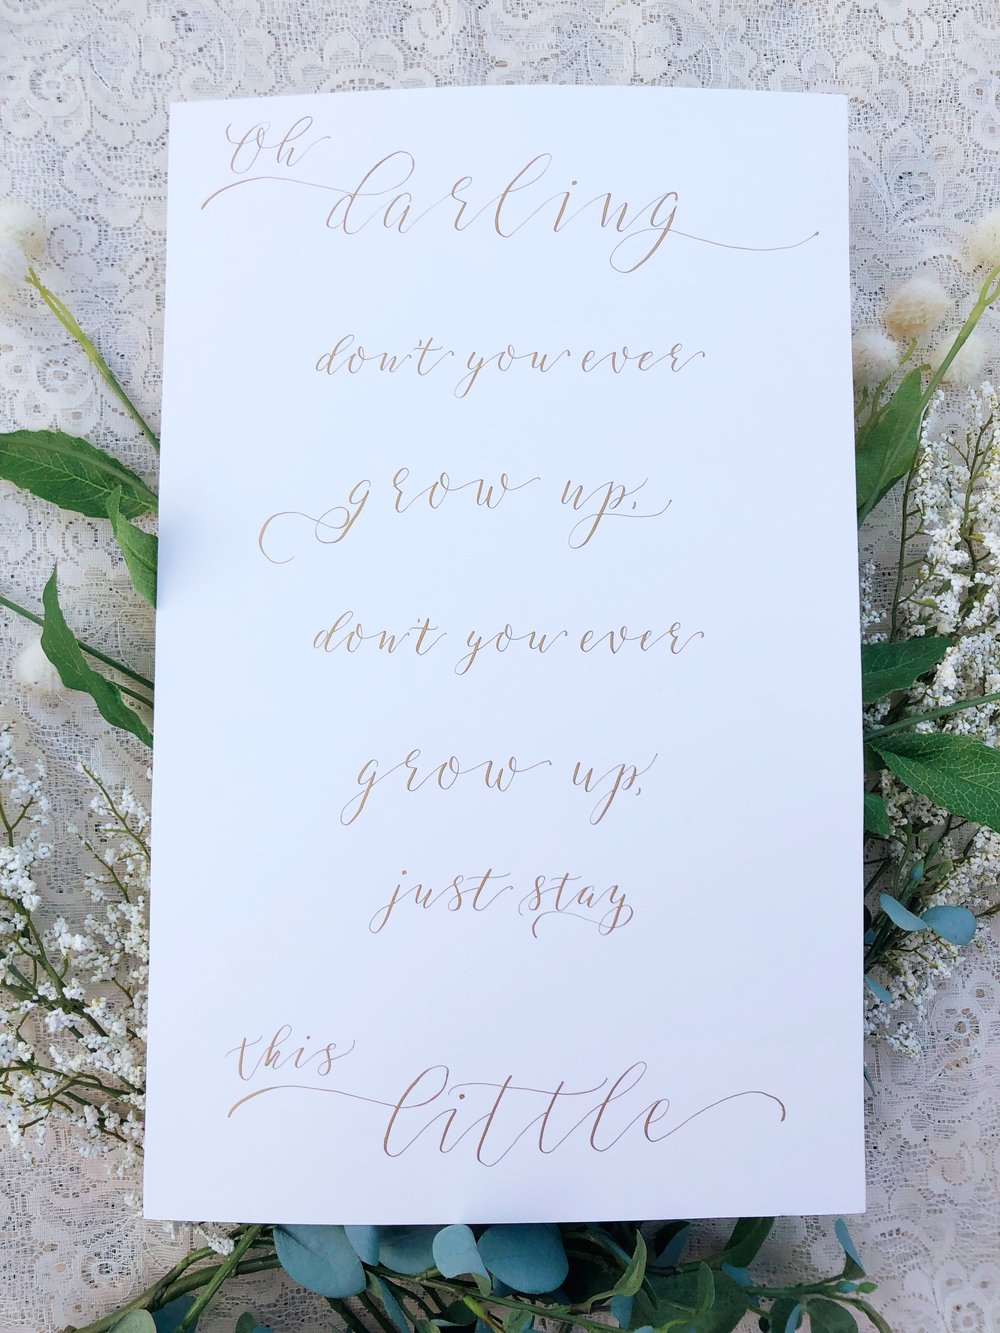 Central PA, York PA, JesSmith Designs, custom, wedding, invitations, bridal, announcements, save the date, baby, hanover, calligraphy, baltimore, wedding invitations, lancaster, gettysburg-03-10 07.58.13.jpg